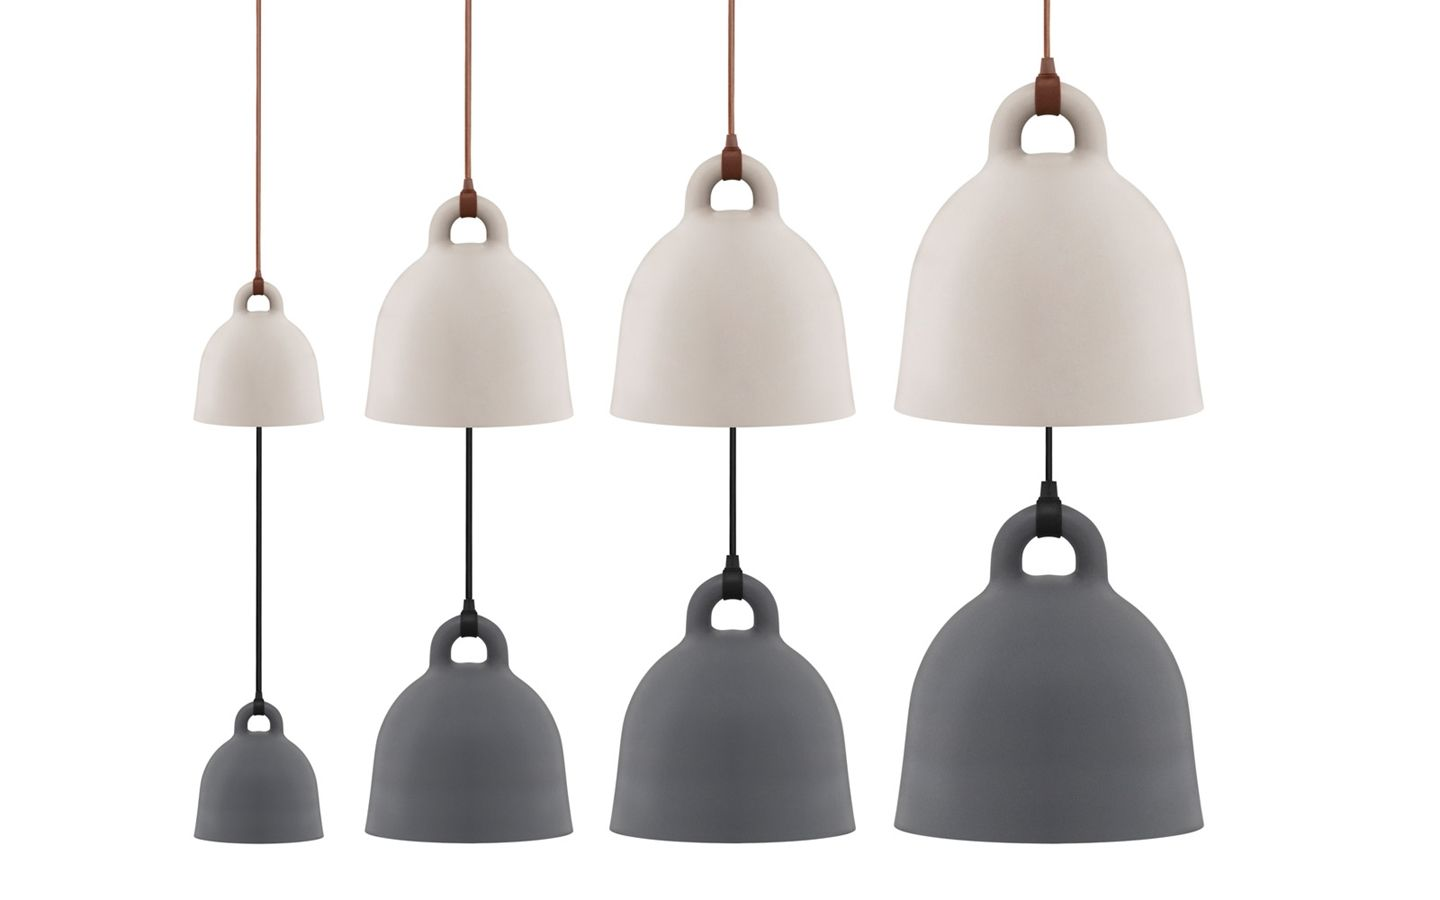 Bell Lamp Large A Robust And Minimalistic Ceiling Lamp In Matte Grey Normann Copenhagen Bell Lamp Normann Copenhagen Lamp Pendant Light